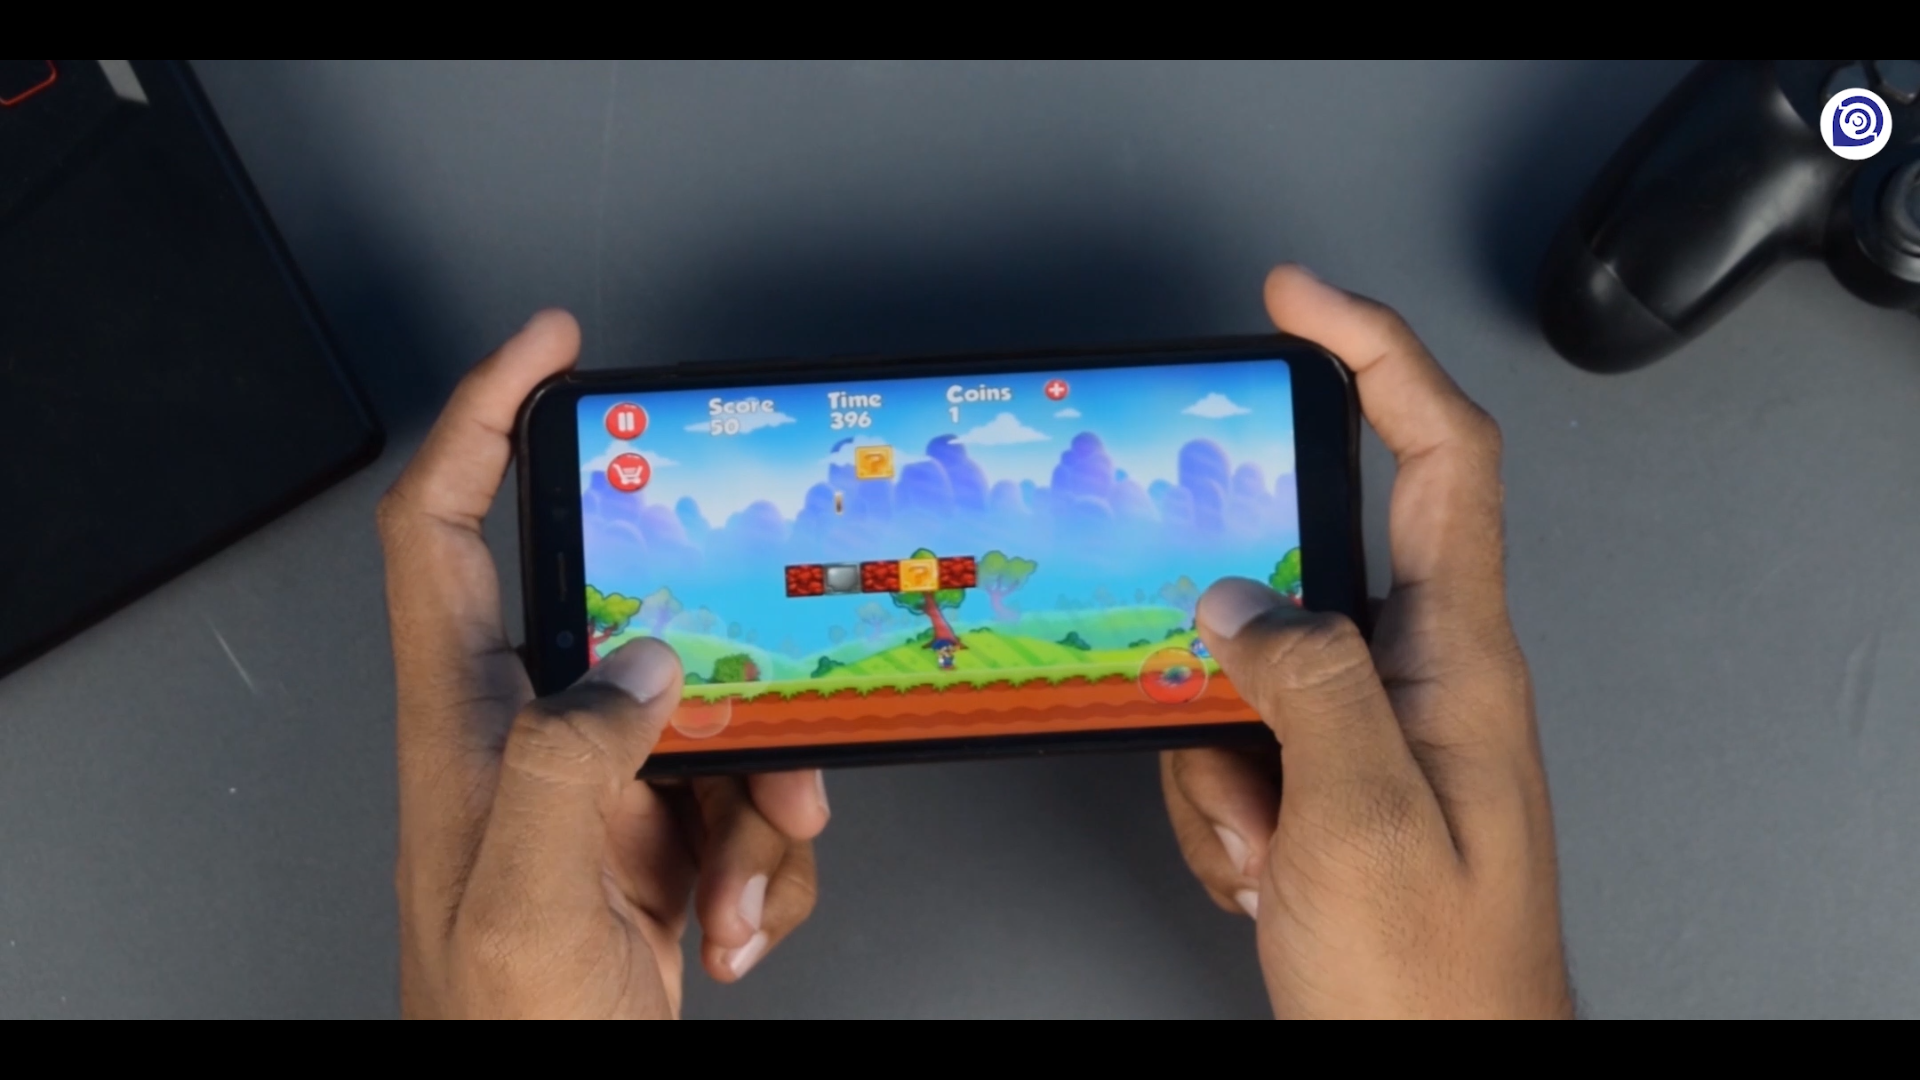 Old School Super Mario on Android?